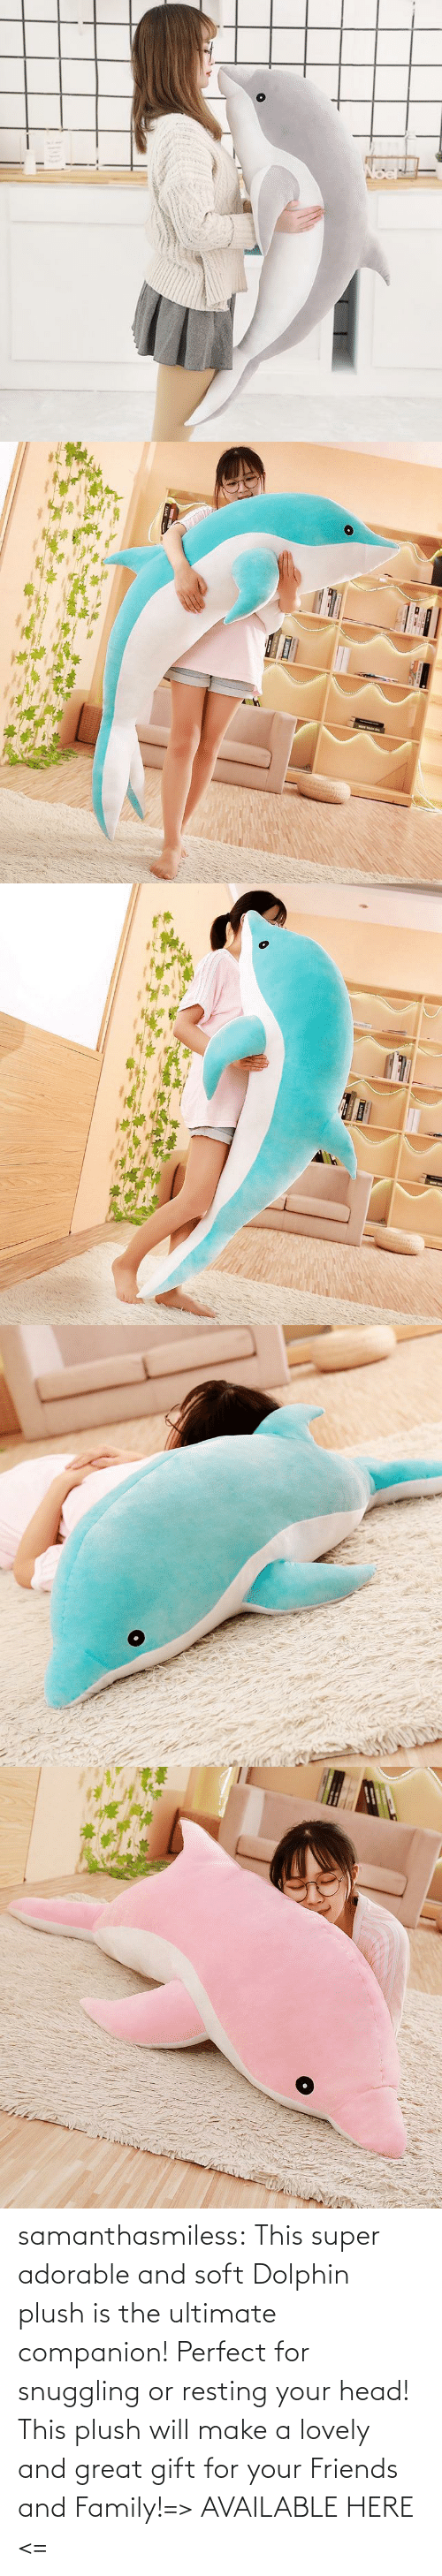 products: samanthasmiless:  This super adorable and soft Dolphin plush is the ultimate companion! Perfect for snuggling or resting your head! This plush will make a lovely and great gift for your Friends and Family!=> AVAILABLE HERE <=